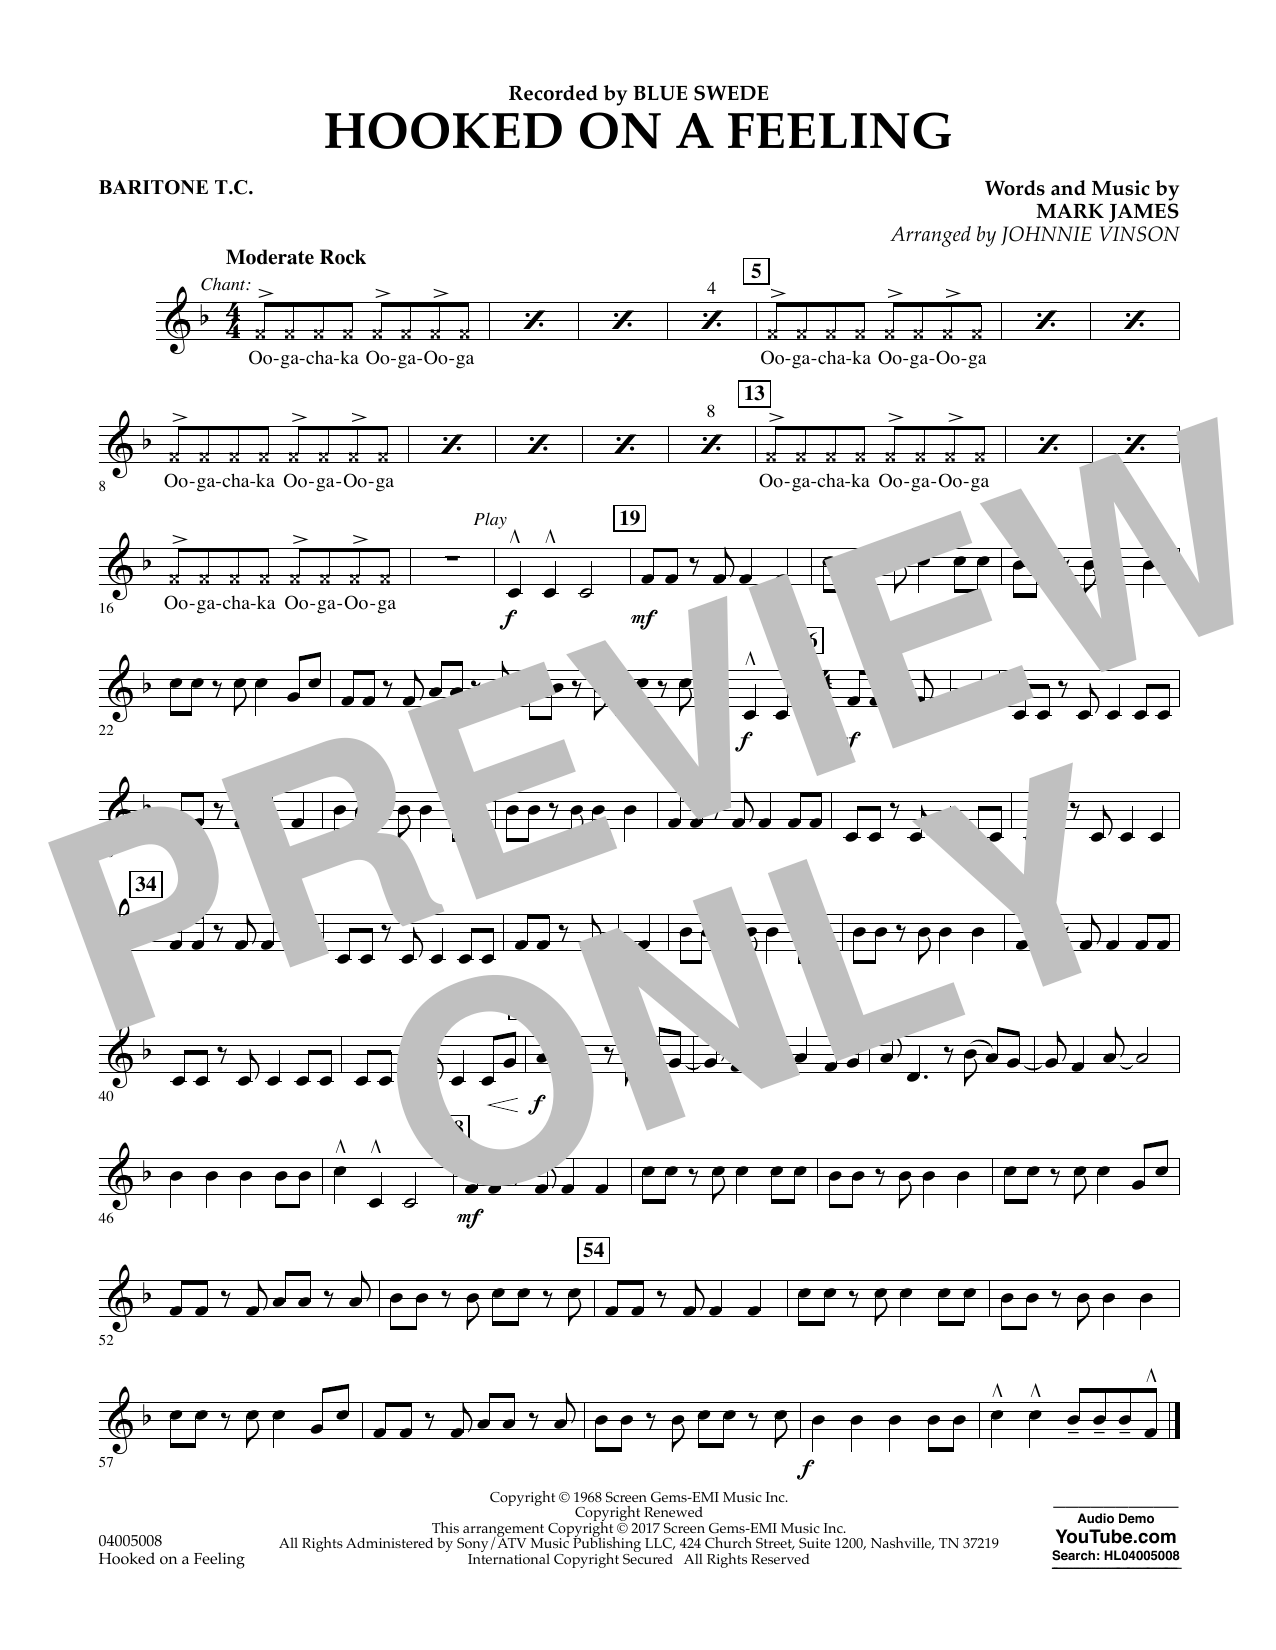 Hooked on a Feeling - Baritone T.C. Sheet Music